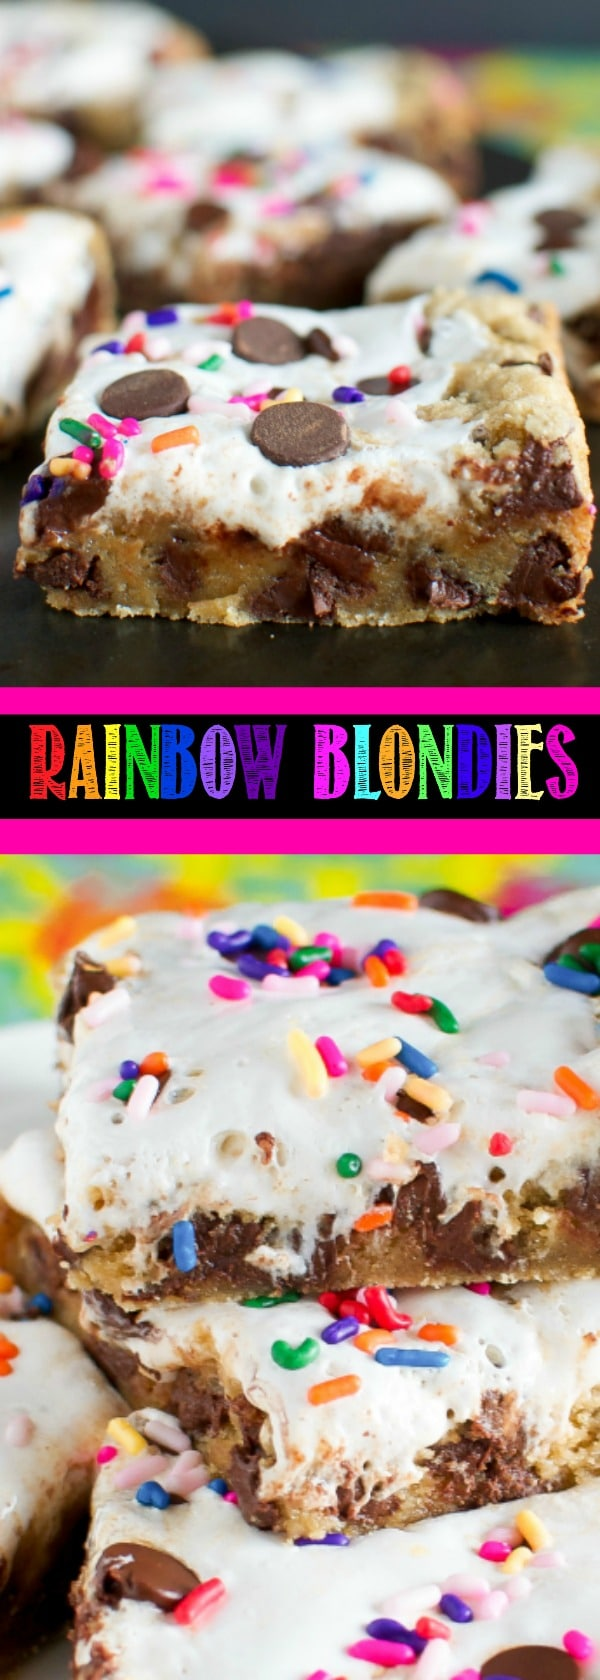 Rainbow Gooey Chocolate Chip Blondies - soft, chewy, and so much fun! The colorful sprinkles make these perfect for spring time, Easter, or birthday parties!